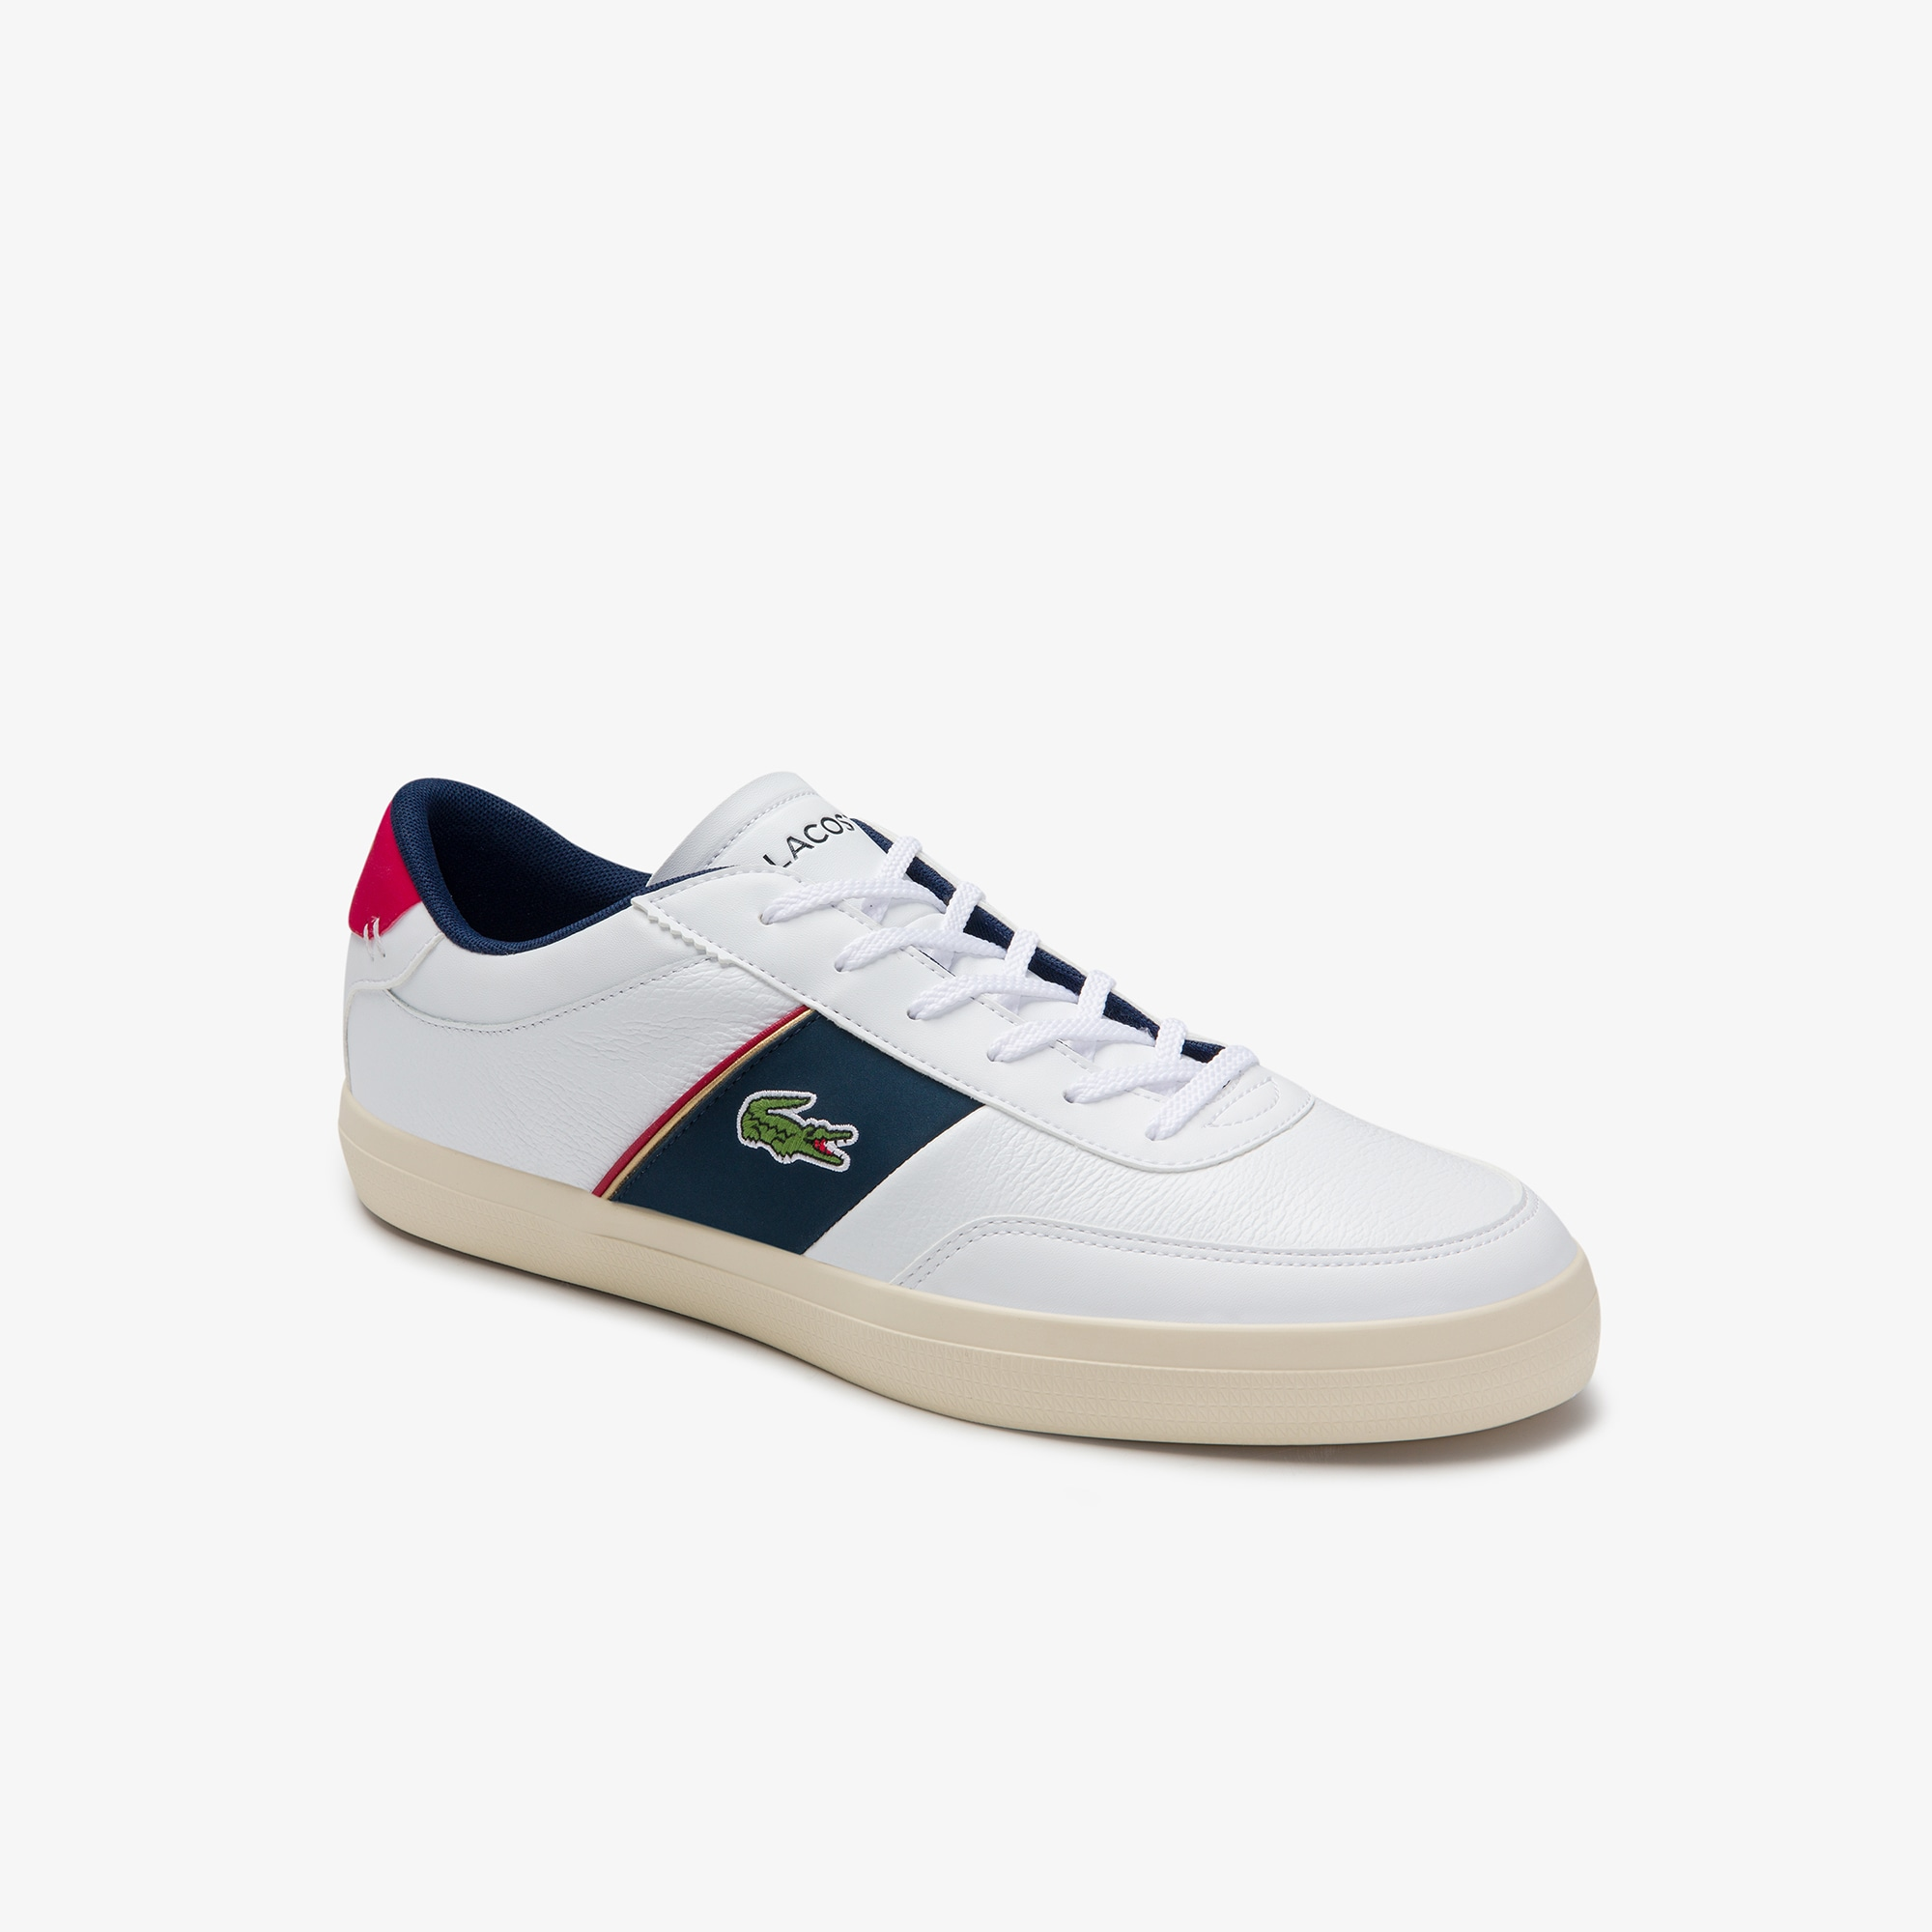 Men's Court-Master Tumbled Leather Sneakers